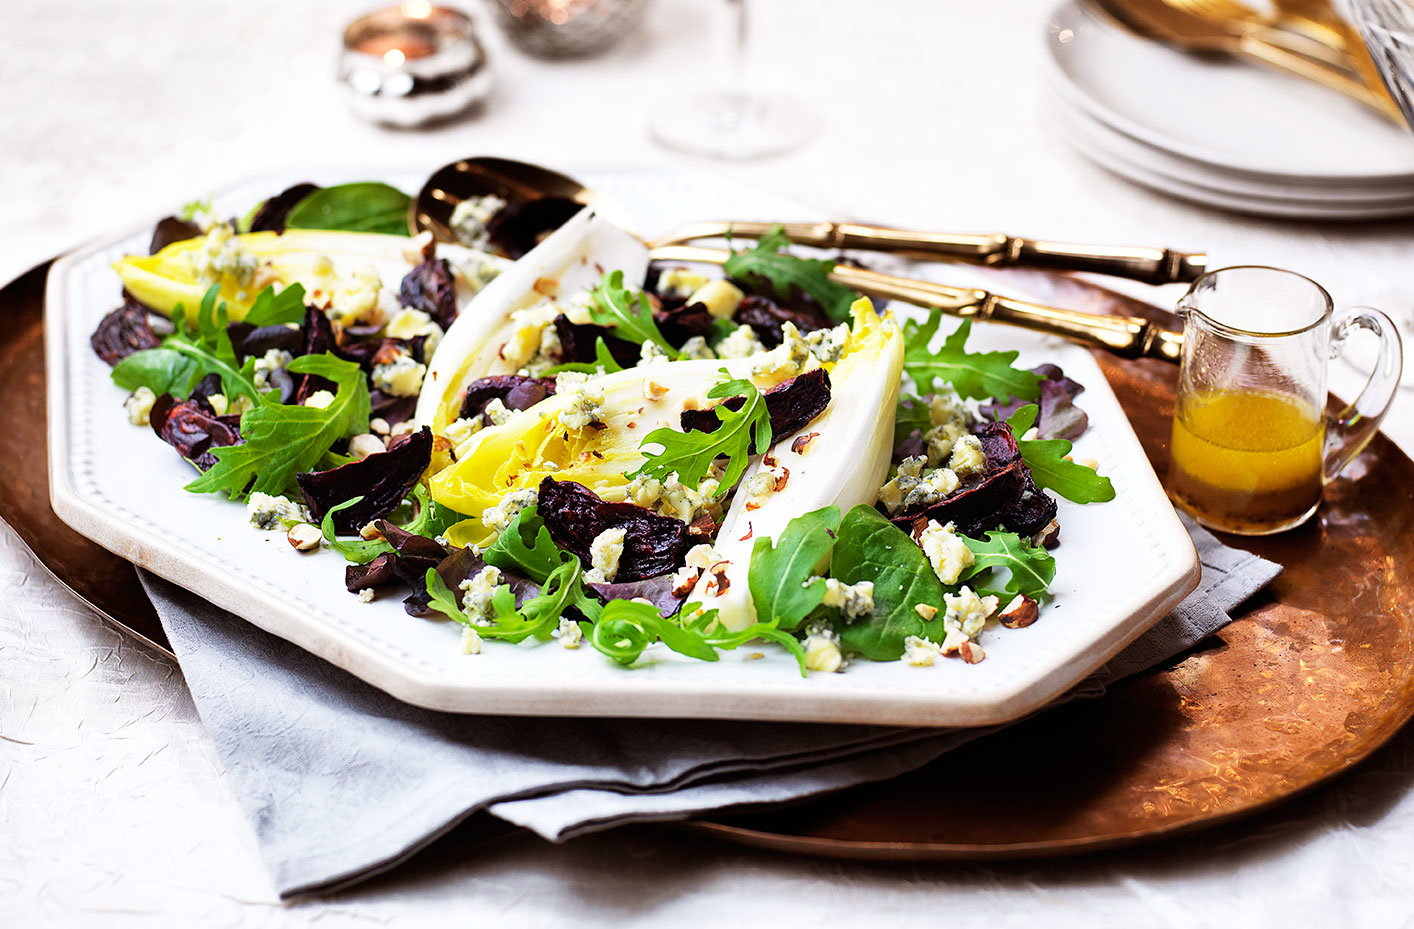 Superb Cold Starter Ideas For A Dinner Party Part - 12: Roasted Beetroot And Stilton Salad With Honey Cider Dressing